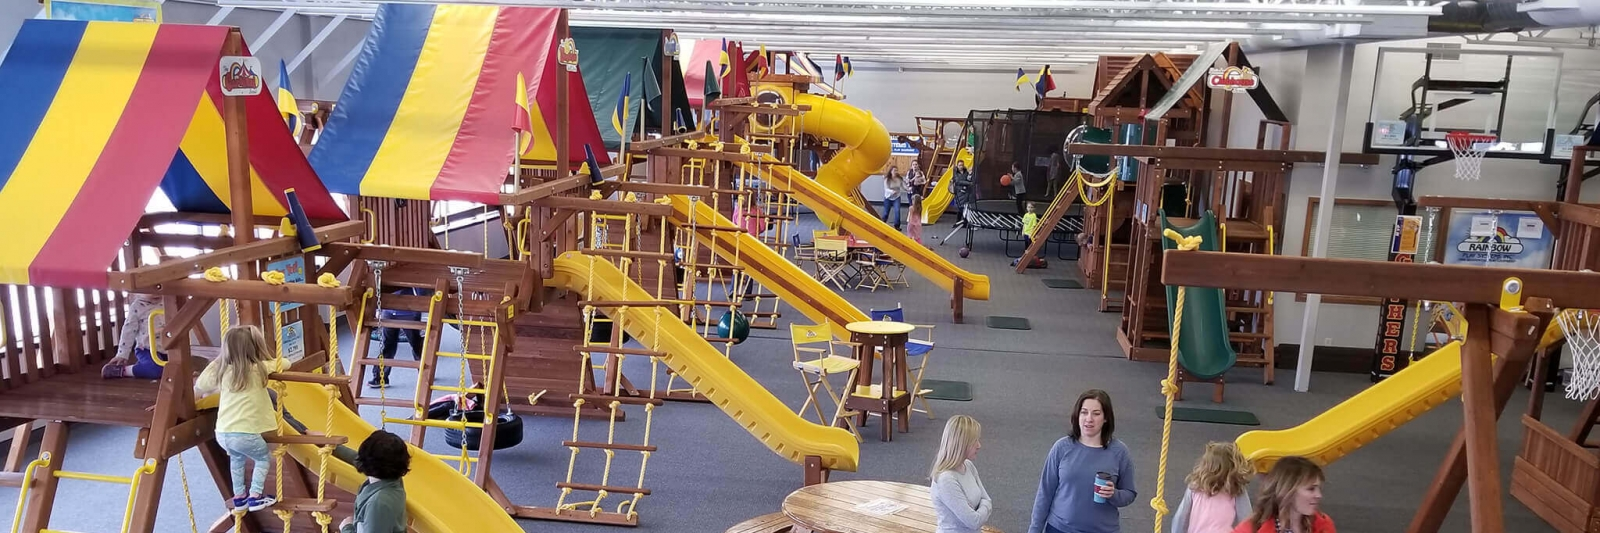 Variety of play sets displayed at indoor playground showroom